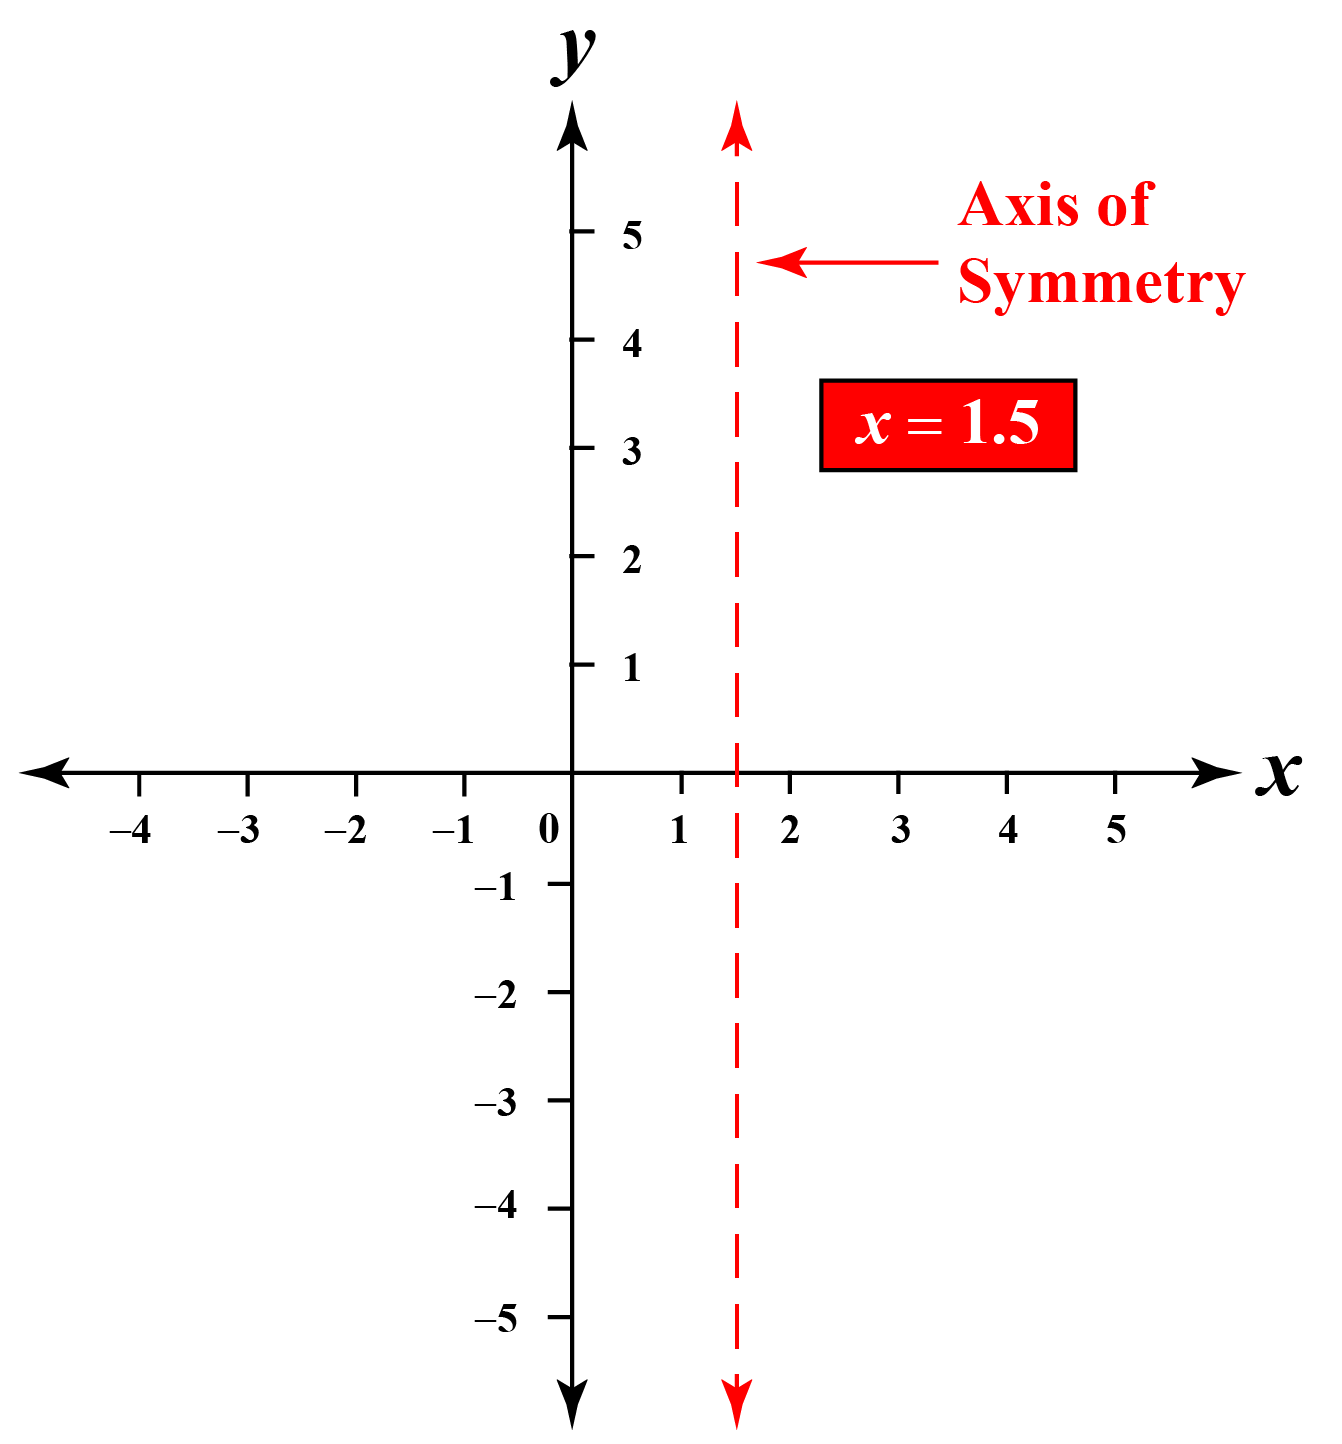 axis of symmetry in a graph